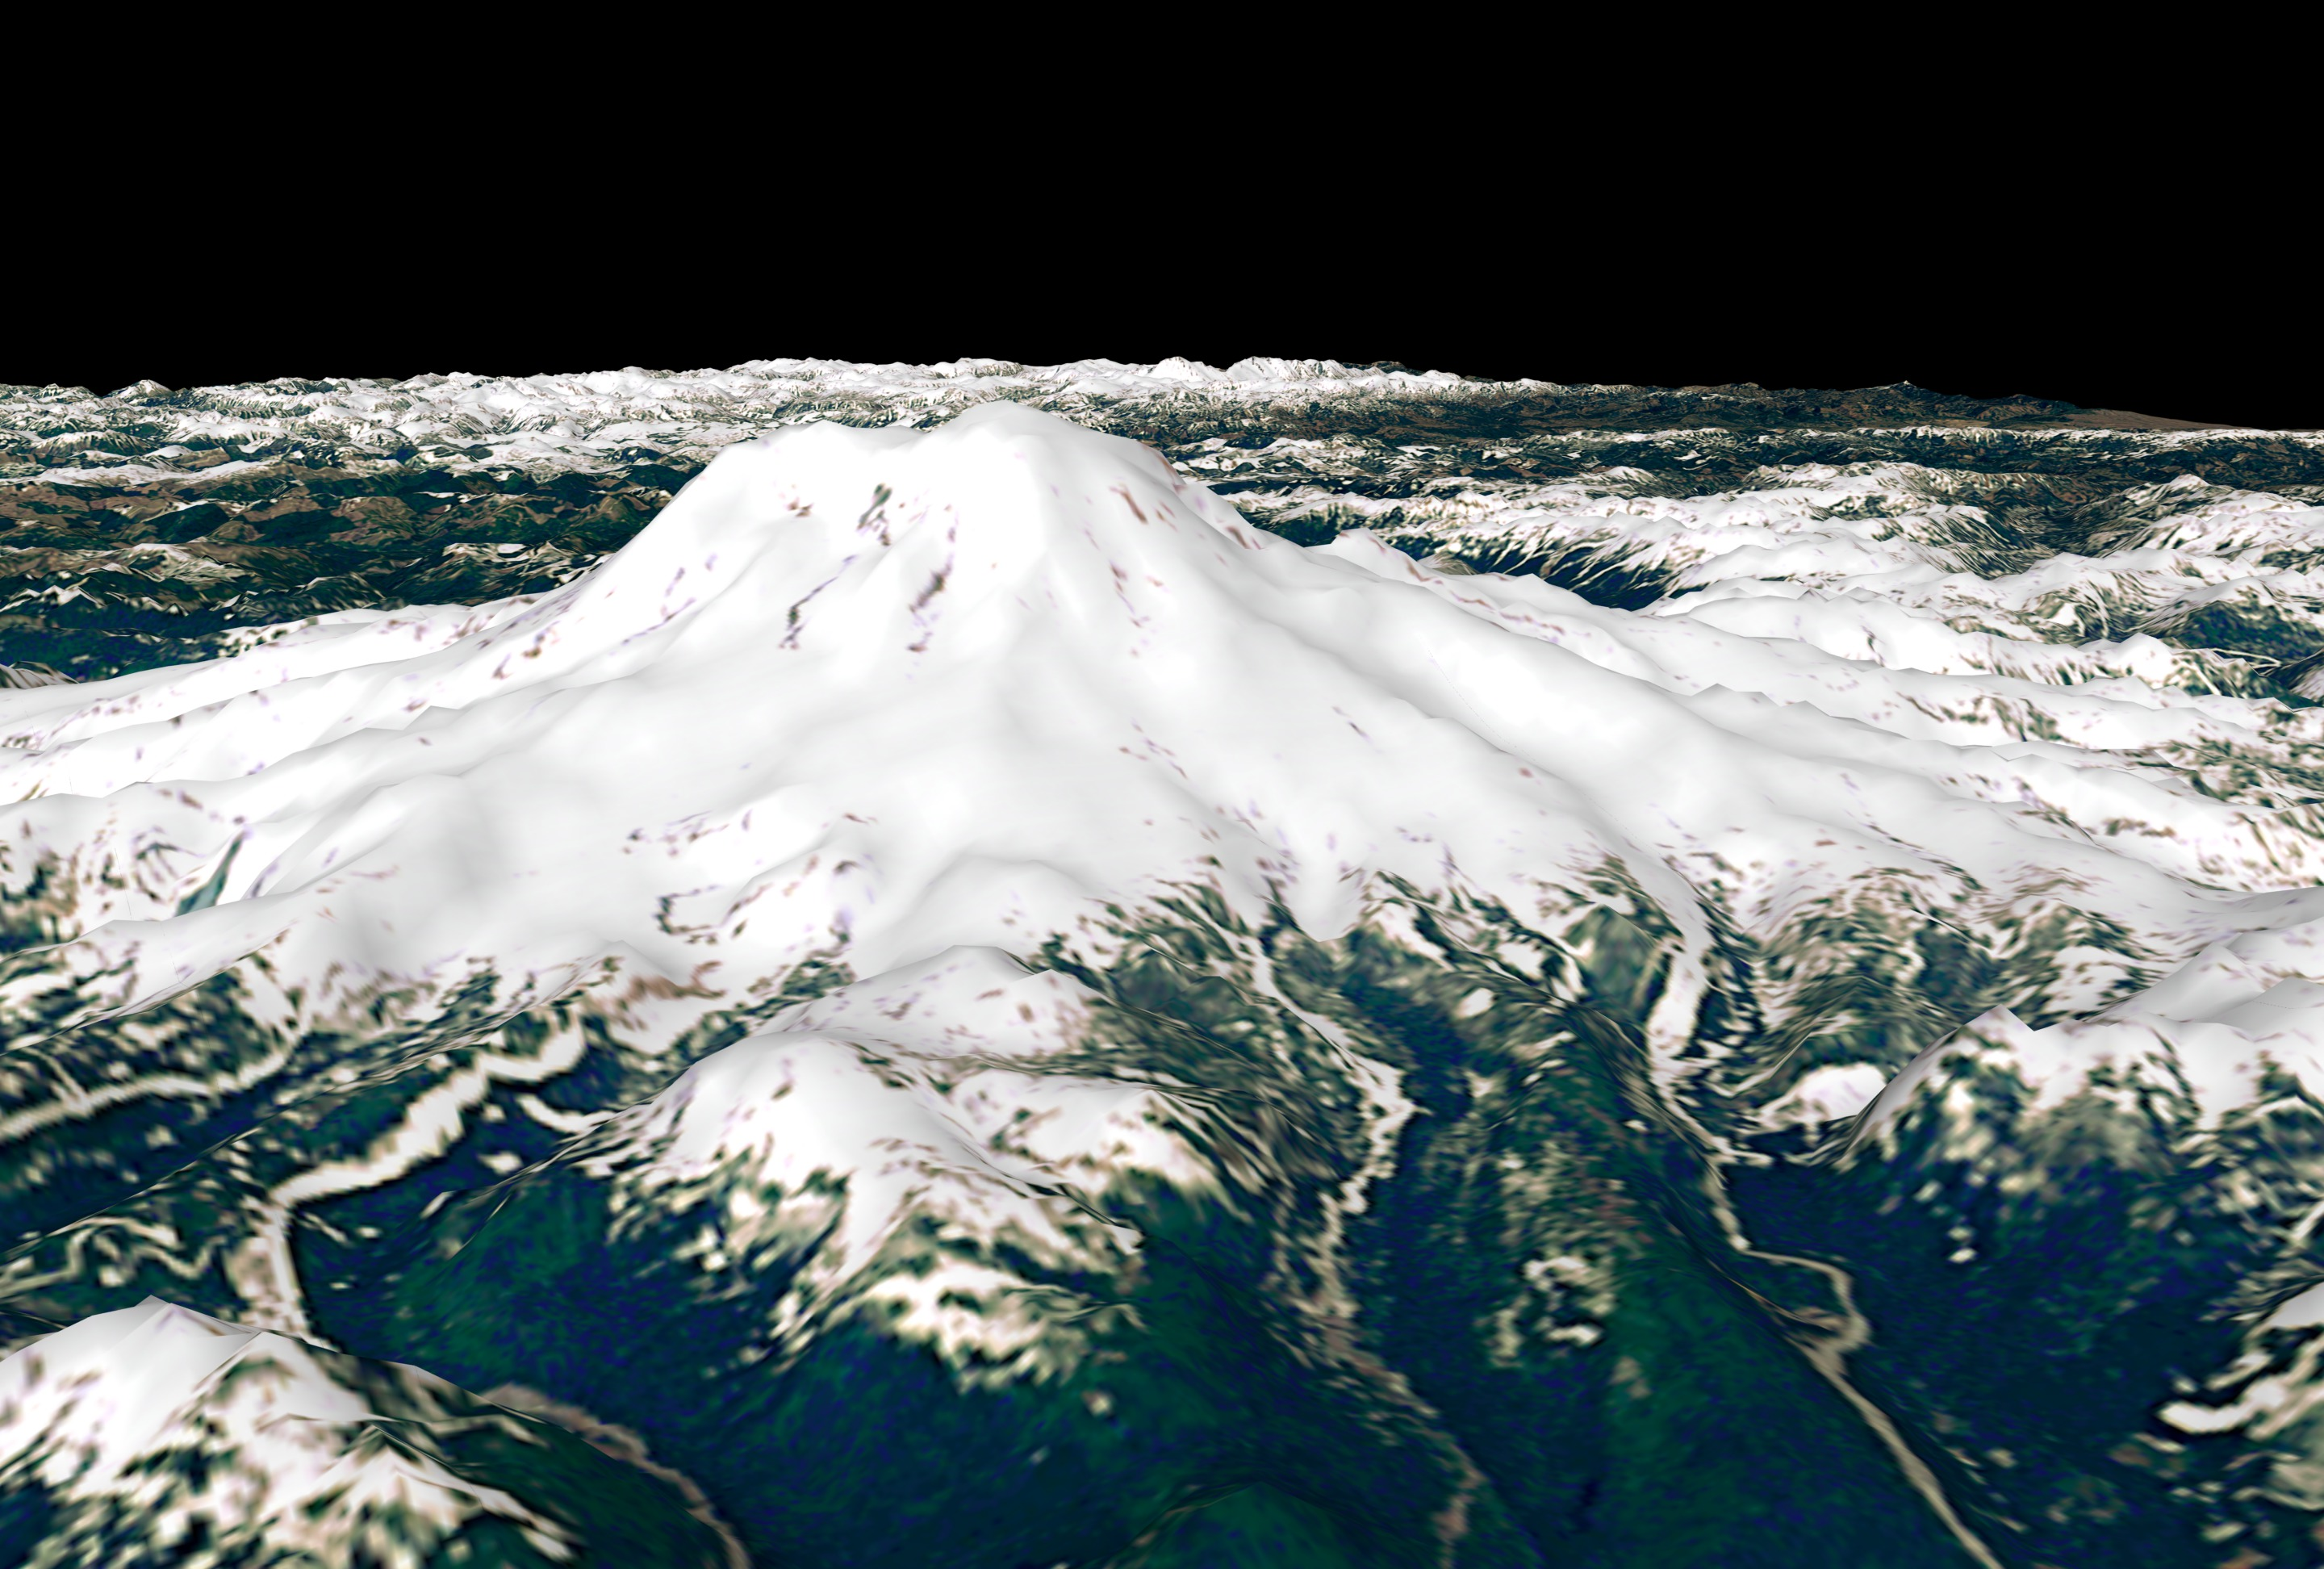 mount rainier black personals Ascending to 14,410 feet above sea level, mount rainier stands as an icon in the washington landscape an active volcano, mount rainier is the most glaciated peak in the contiguous usa, spawning six major rivers subalpine wildflower meadows ring the icy volcano while ancient forest cloaks mount.